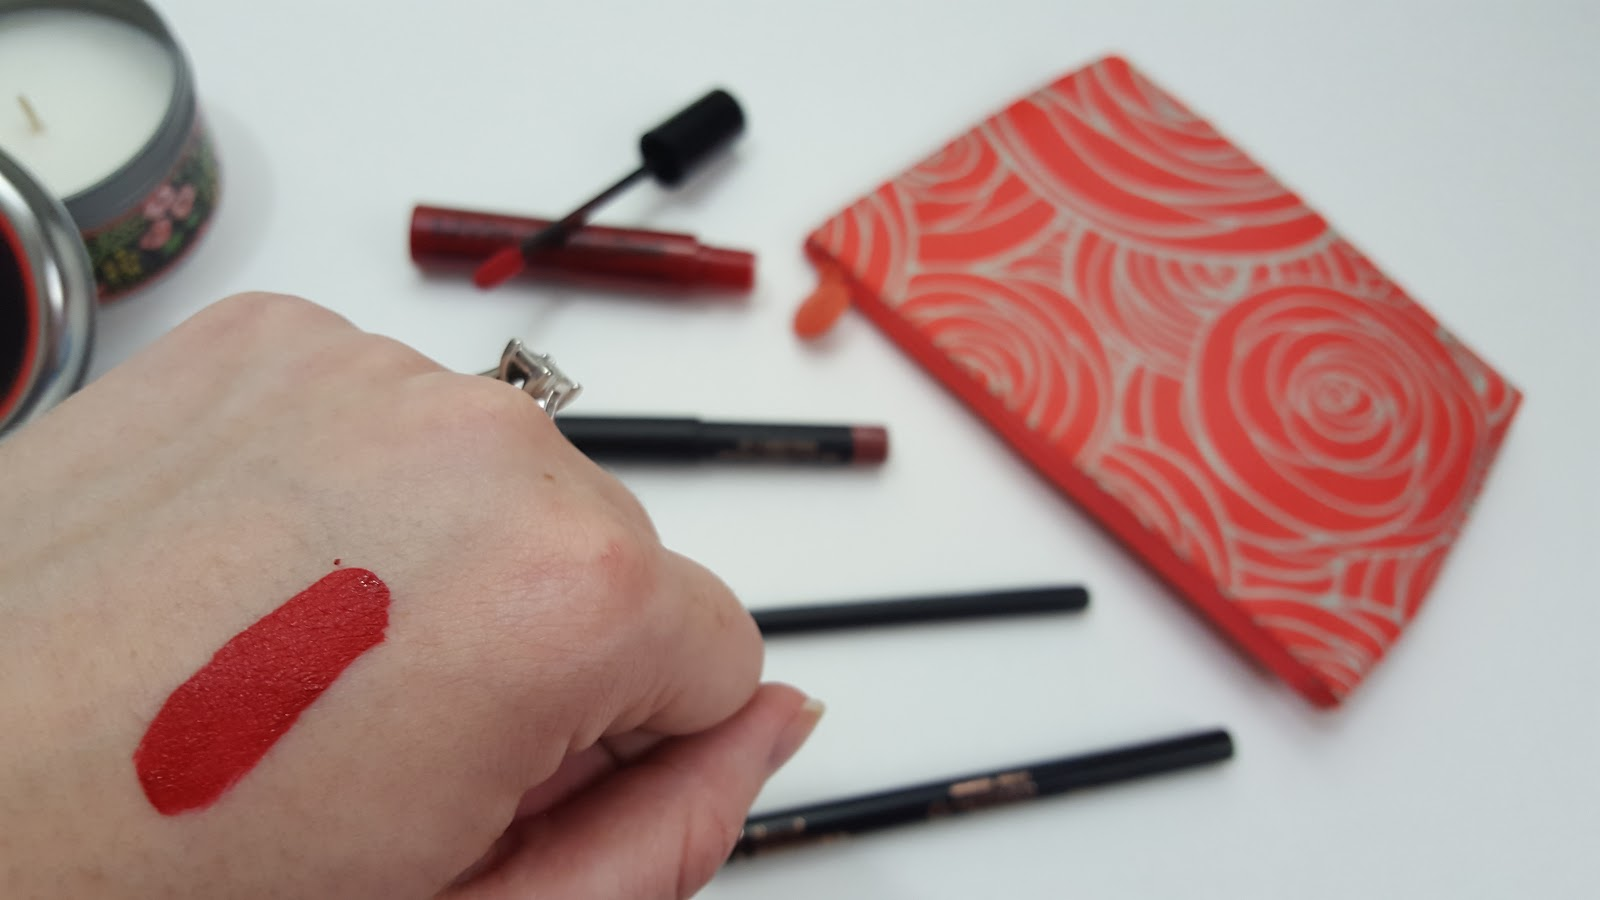 Nyx liquid suede cream lipstick in kitten heels- swatch and review